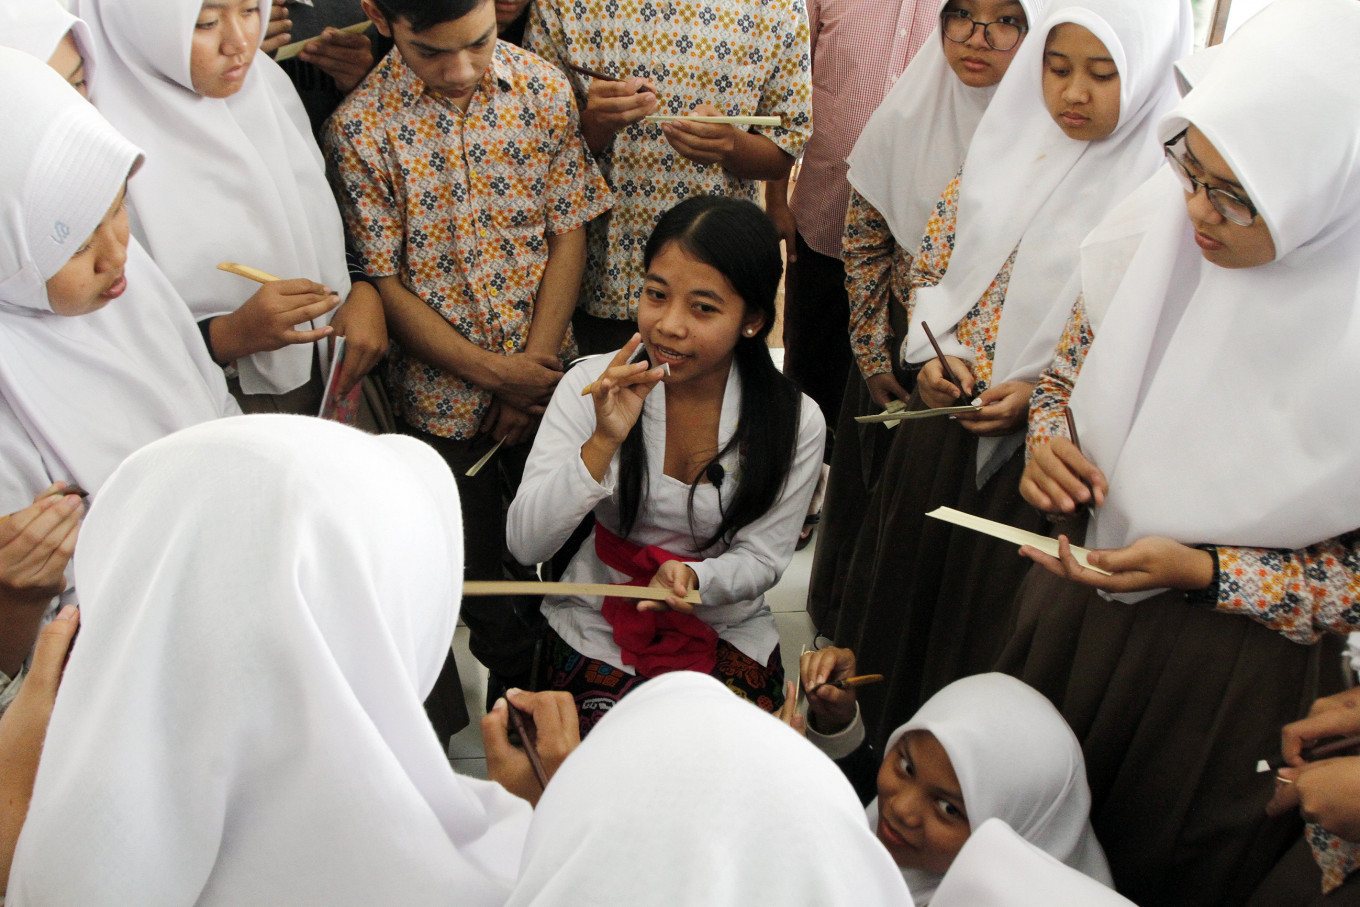 Udayana University student Siti Noviali (center) explains the right way to hold a knife for writing on a palm leaf, called pangrupak, during a workshop at the Ajip Rosidi Library on Thursday. Durable palm leaves were long used in the archipelago to write script. JP/Arya Dipa